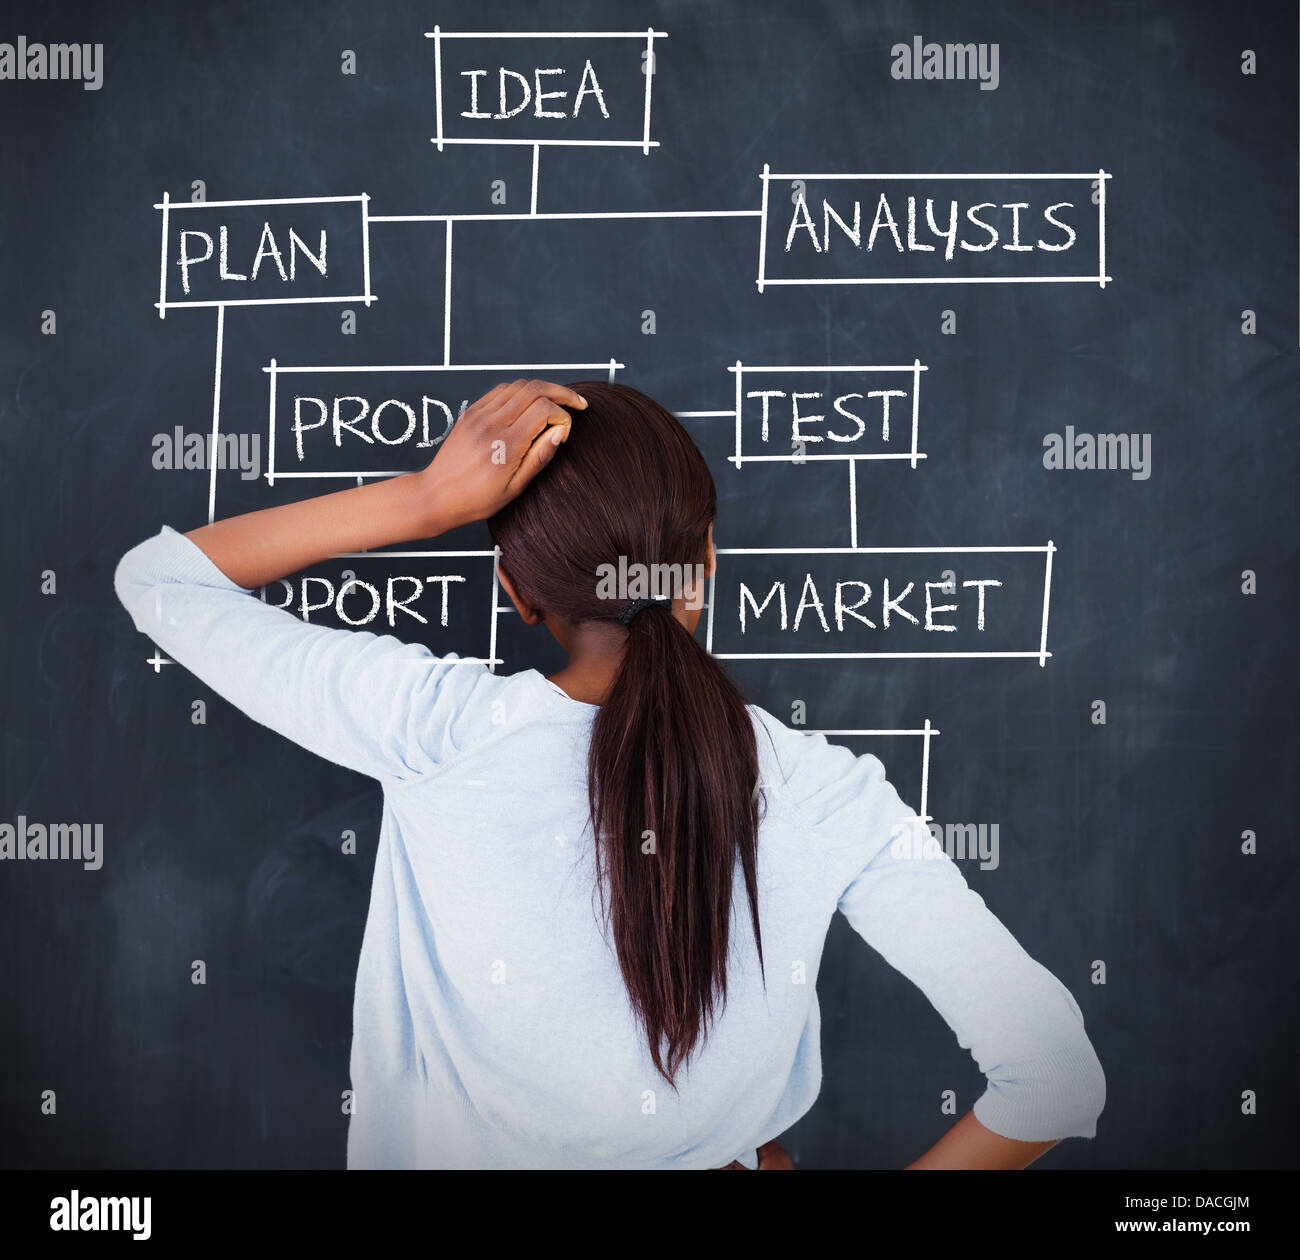 Woman drawing a flowchart about business terms - Stock Image